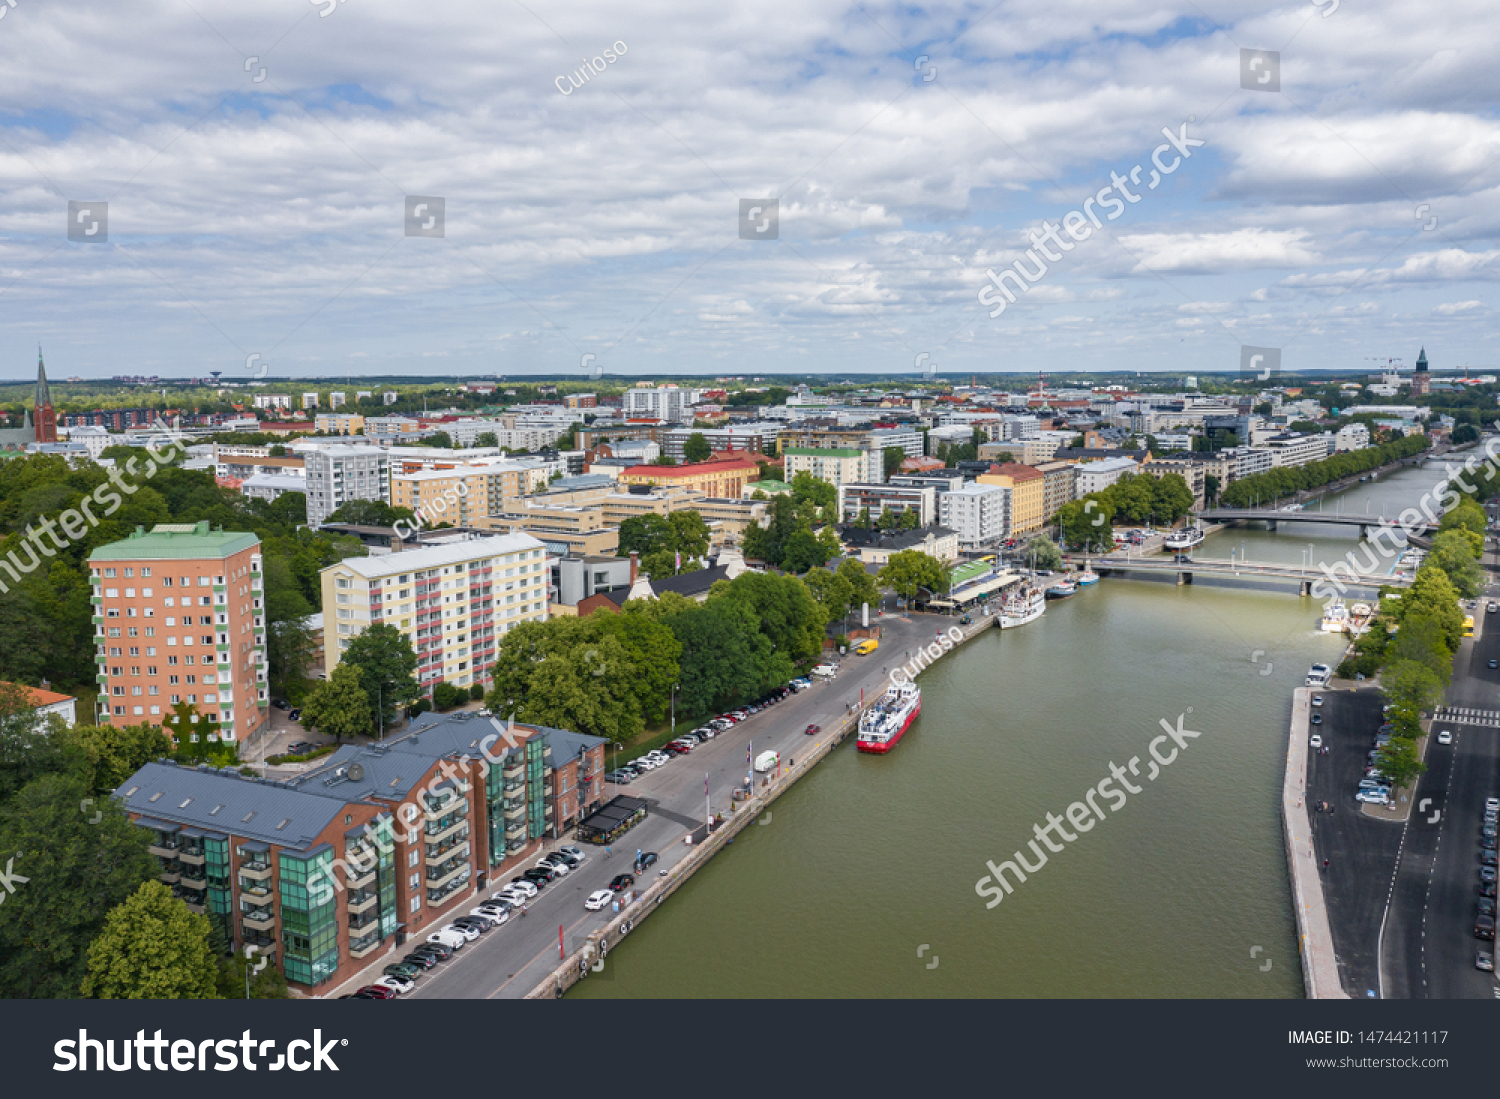 TURKU, FINLAND - AUGUST 02,2019: Aerial view of city of Turku. Photo made by drone from above. Finland. Europe.  #1474421117